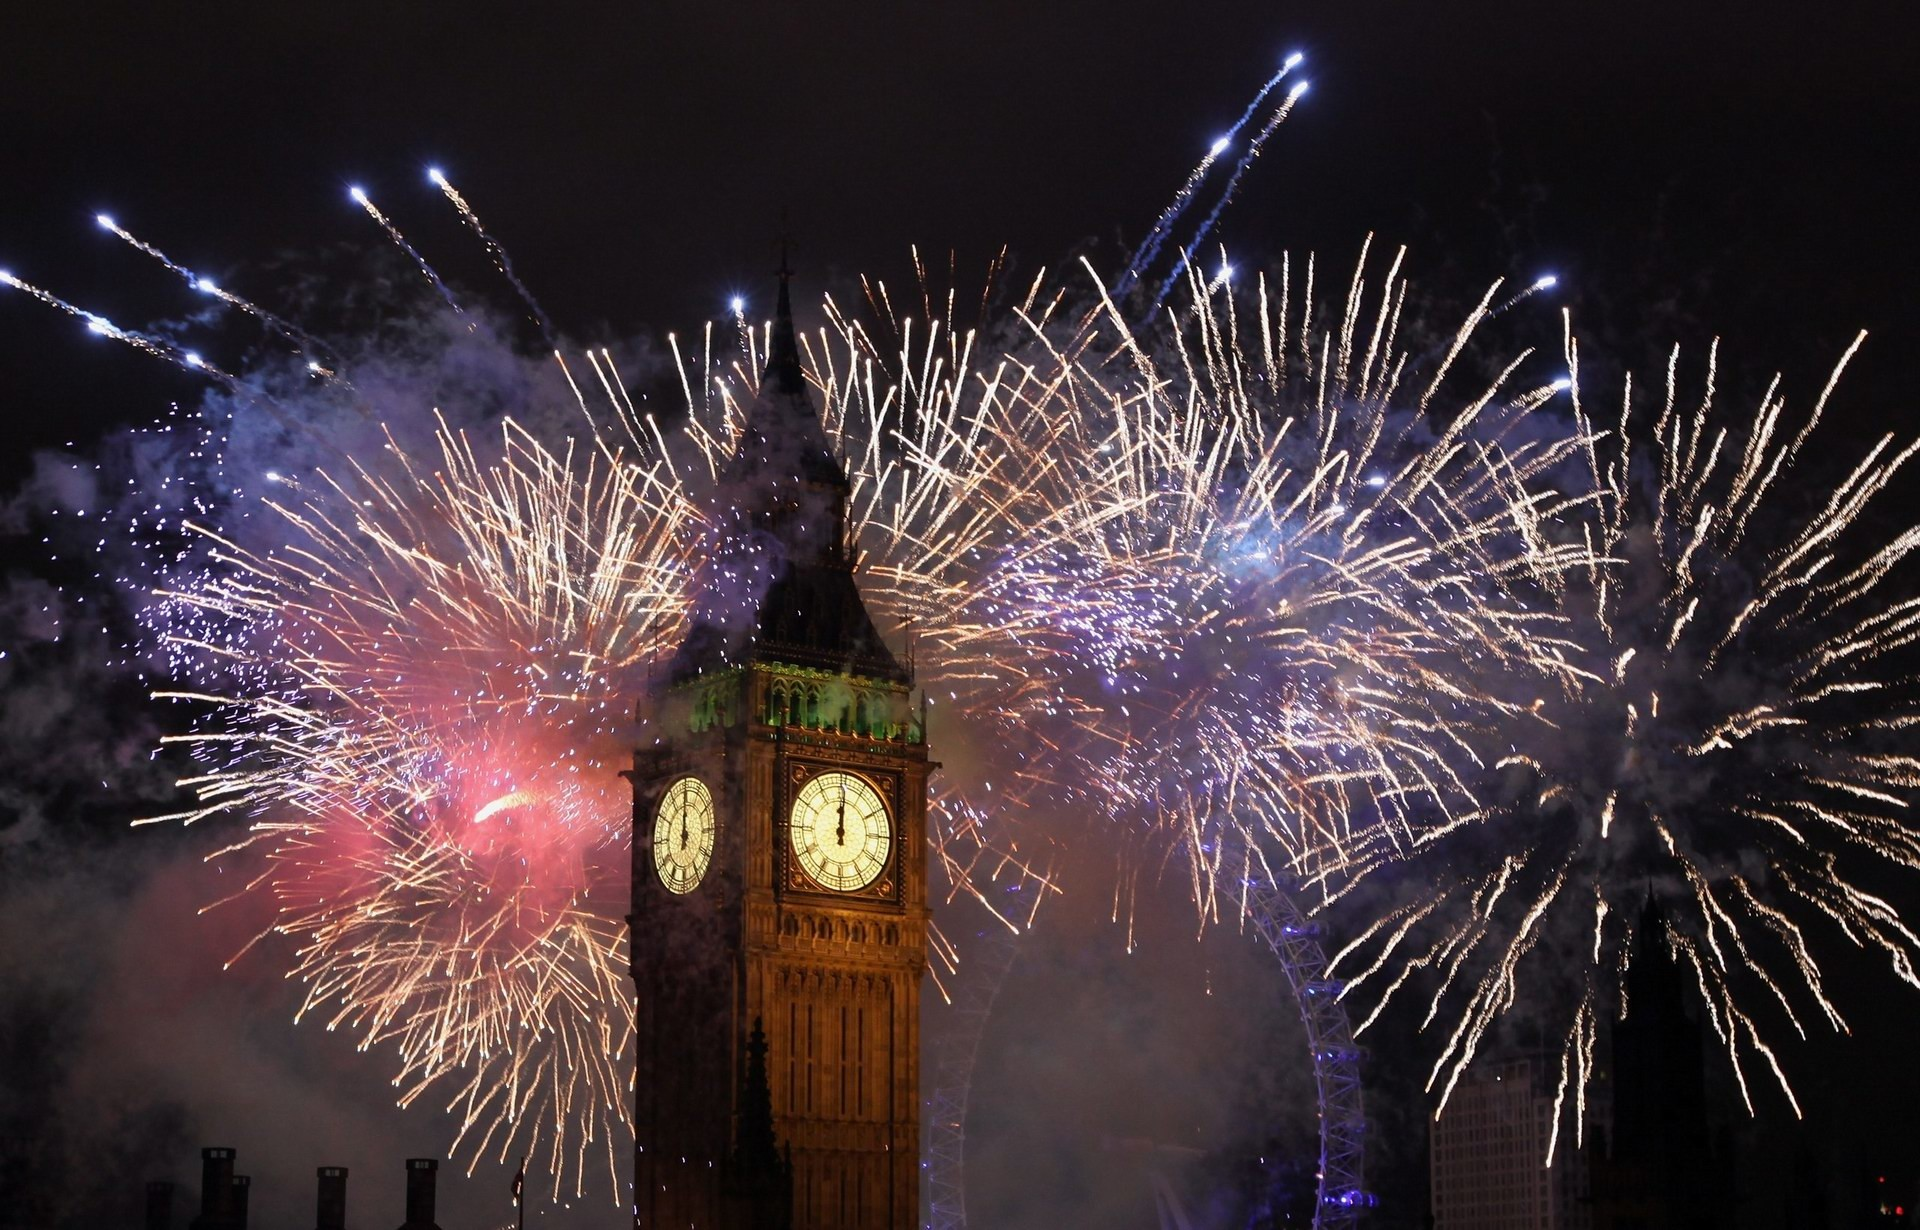 1920x1230 Big Ben Tower Firework Display Wallpaper